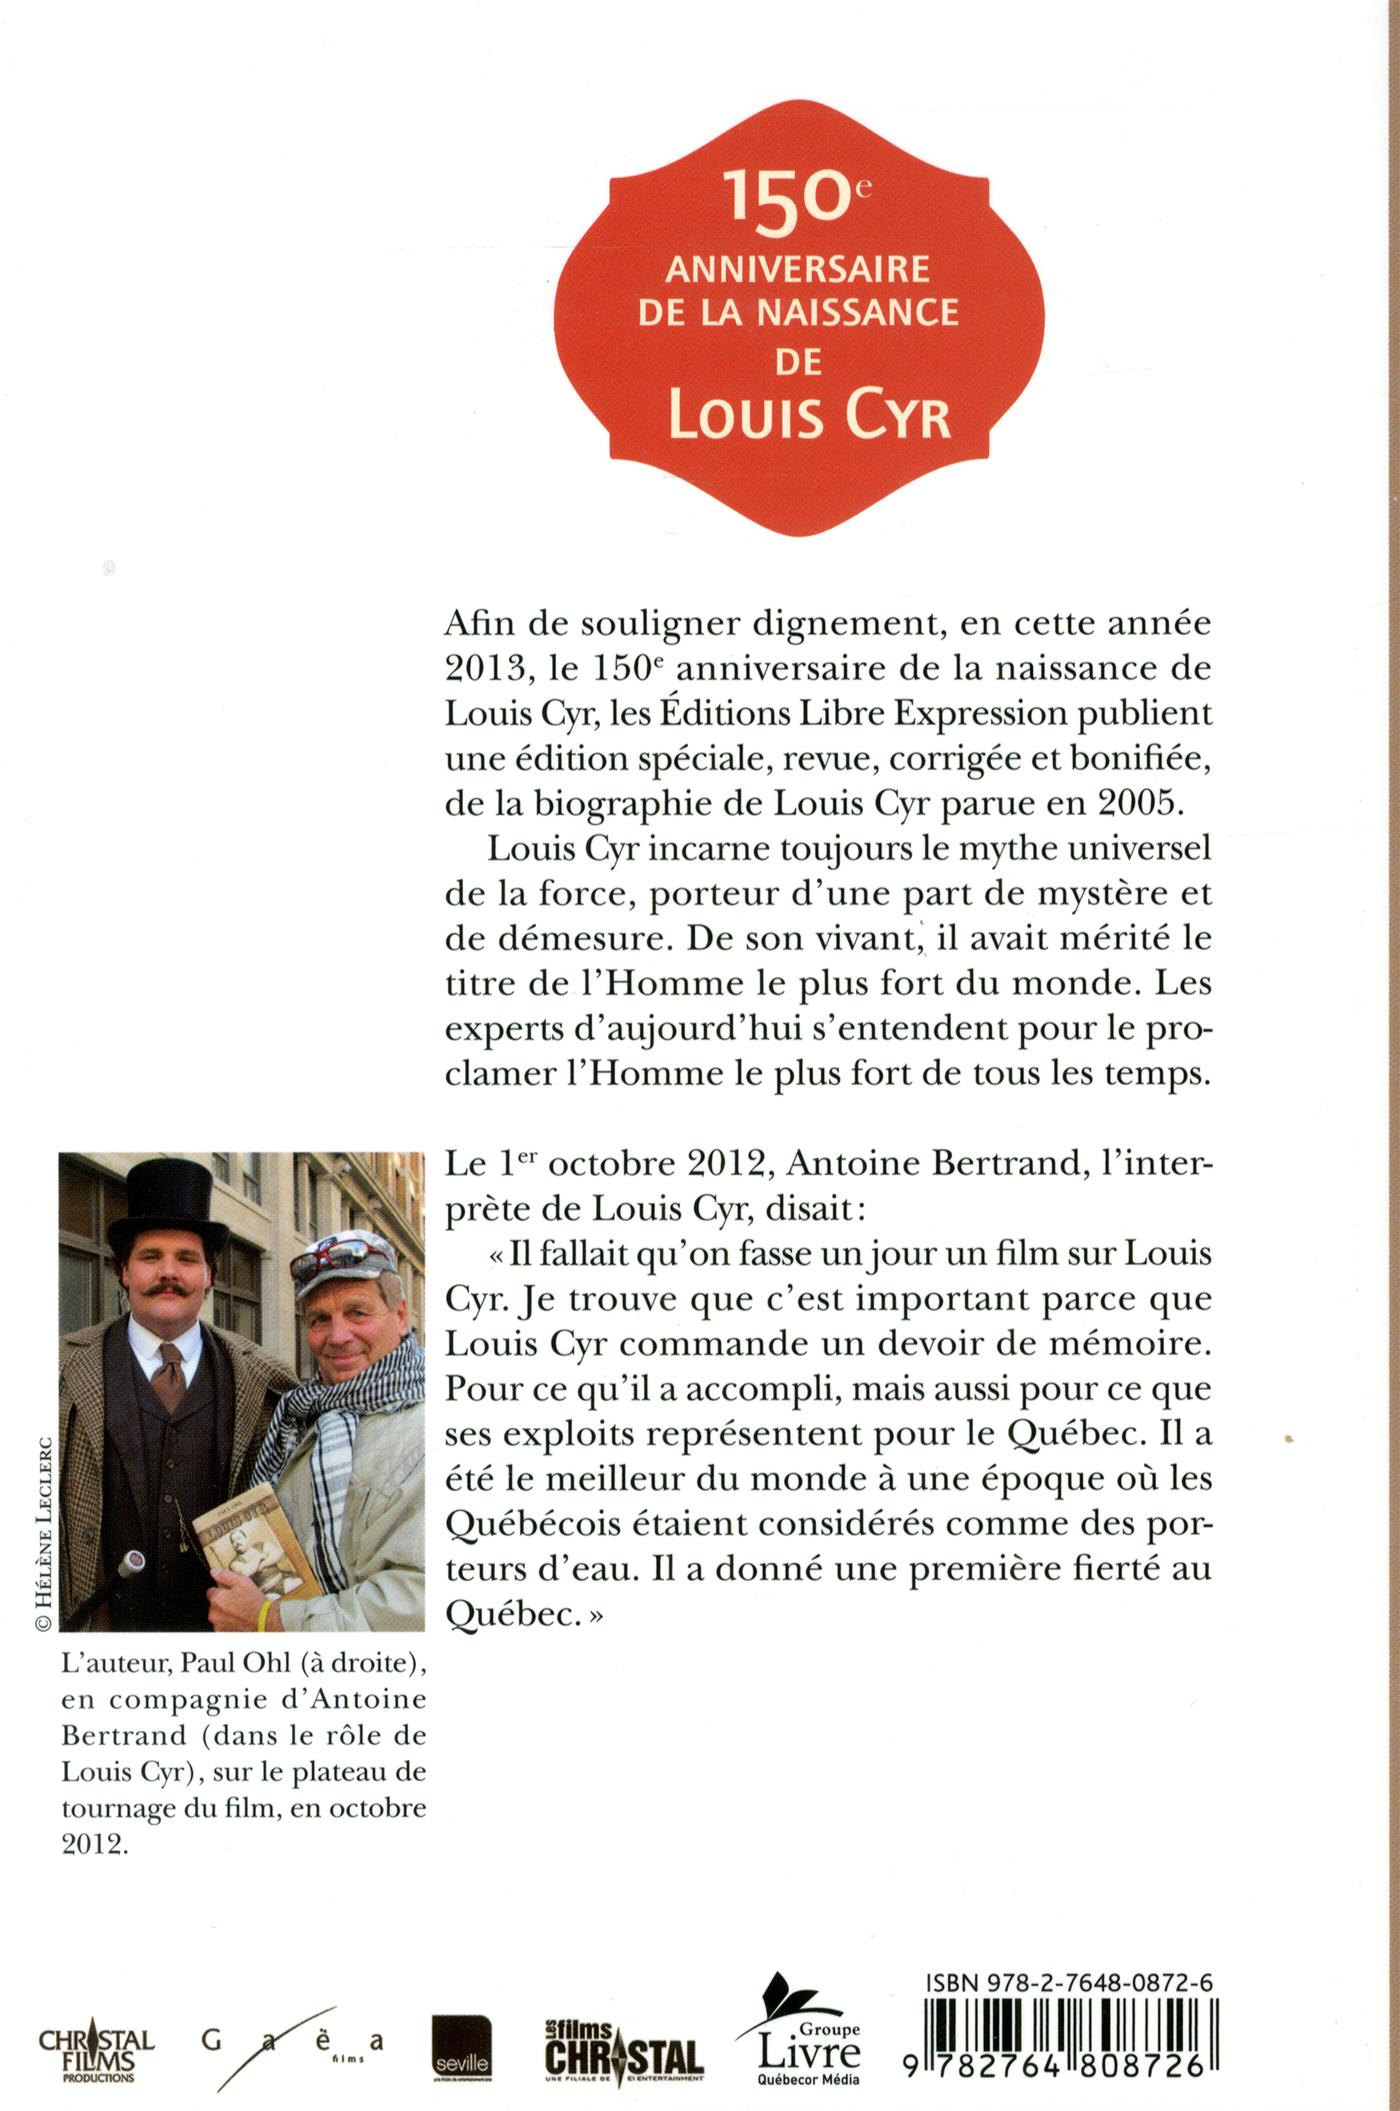 Louis Cyr - Paul e. Ohl revers